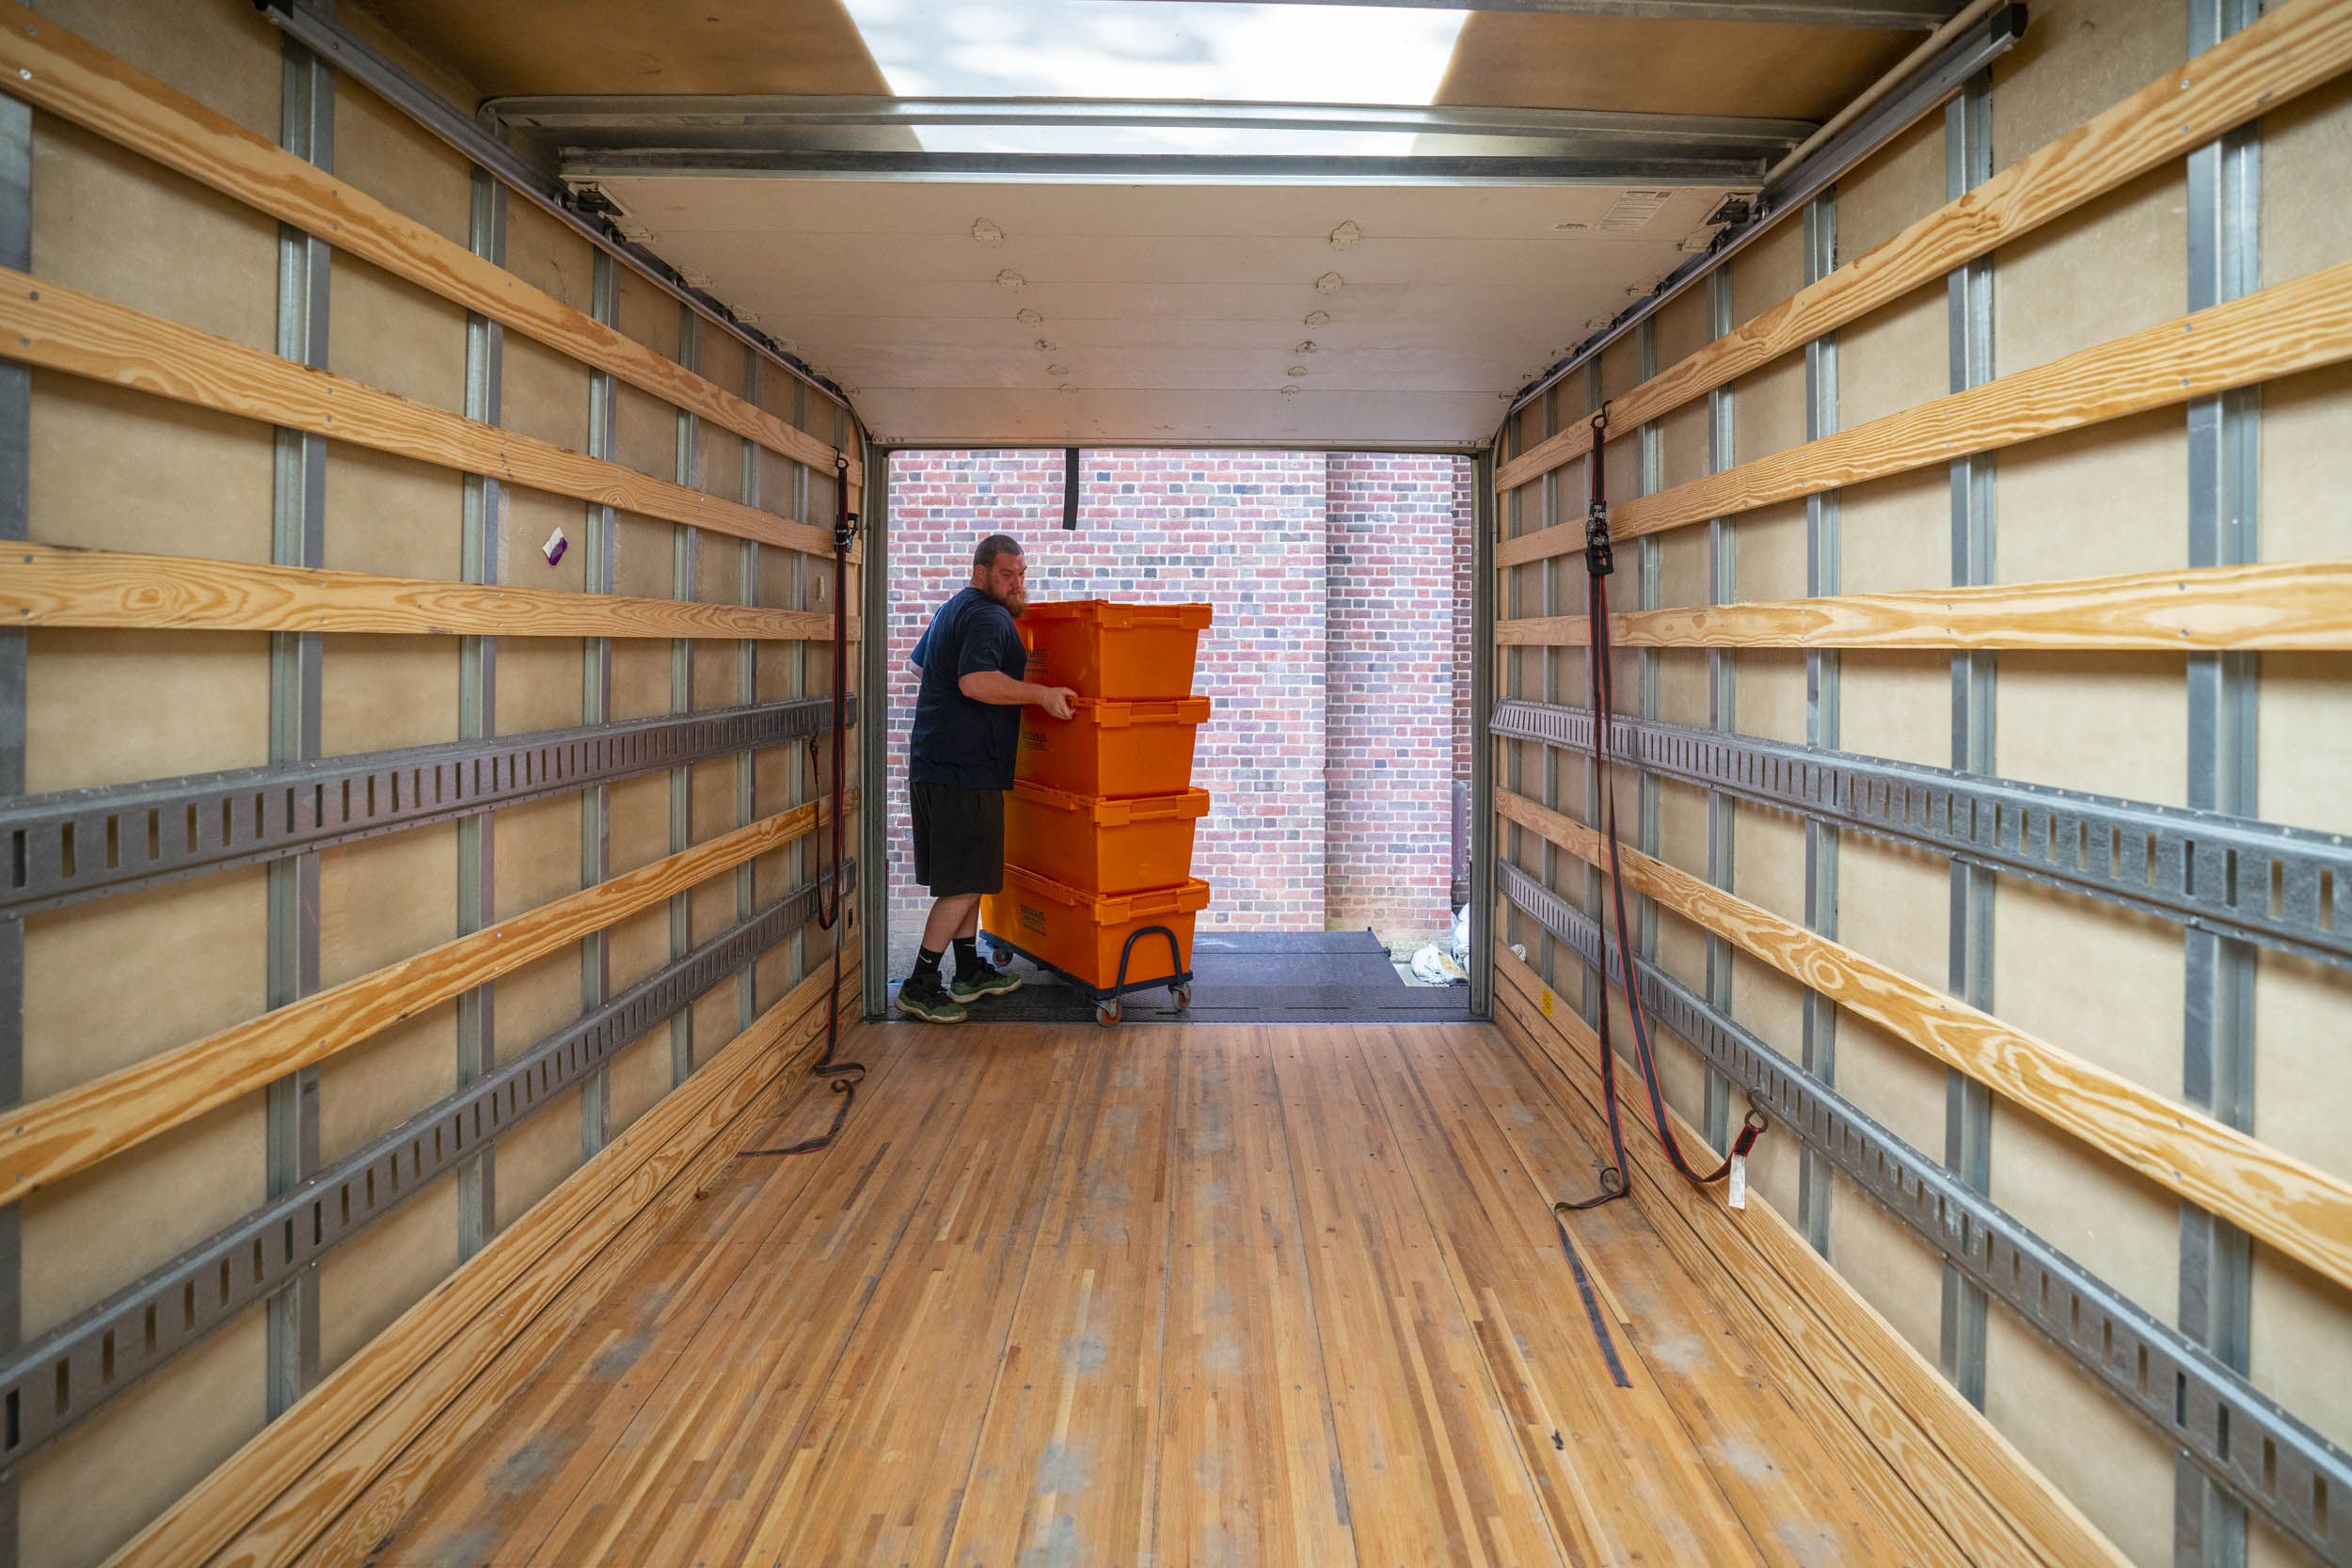 Some Alderman books went to Clemons and others to Ivy Stacks, transported in these big, stackable crates.